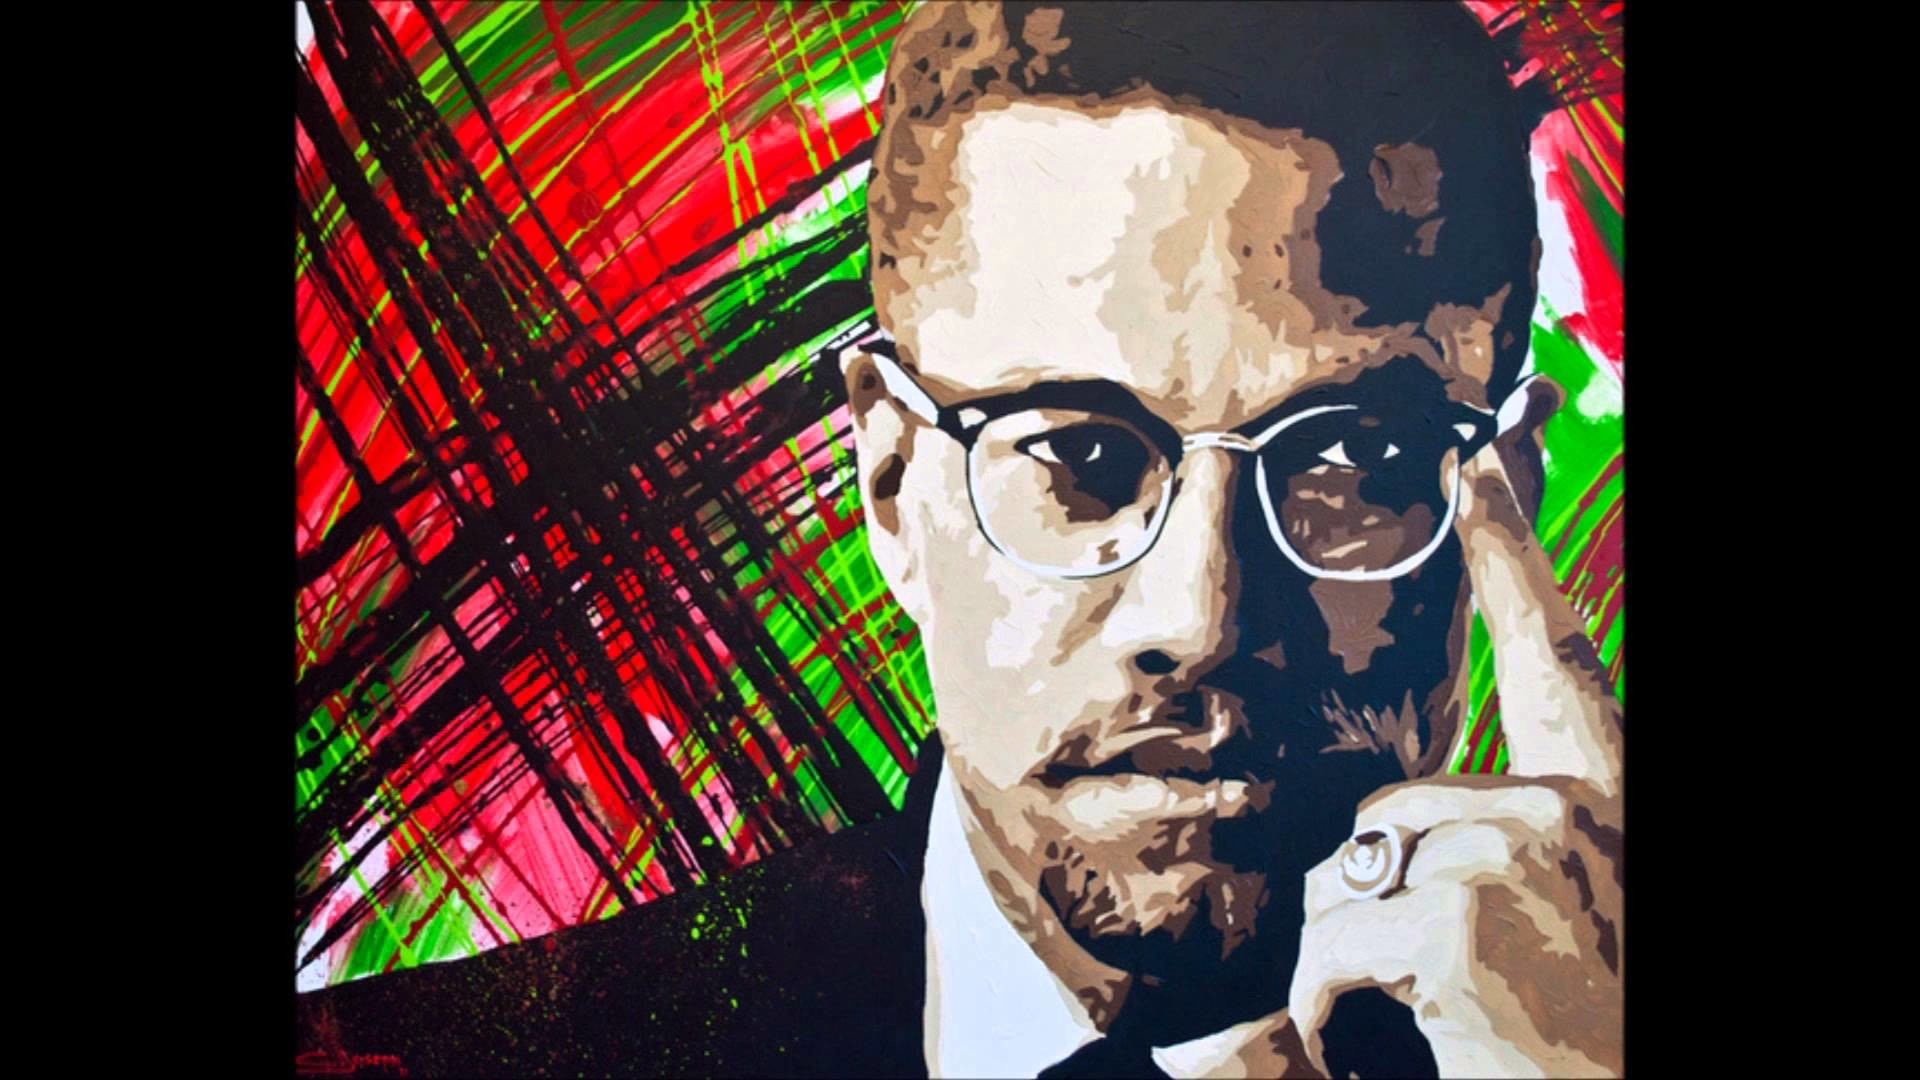 1920x1080 photographs malcolm x; malcolm x speaks on true freedom and challenges  white liberals ...